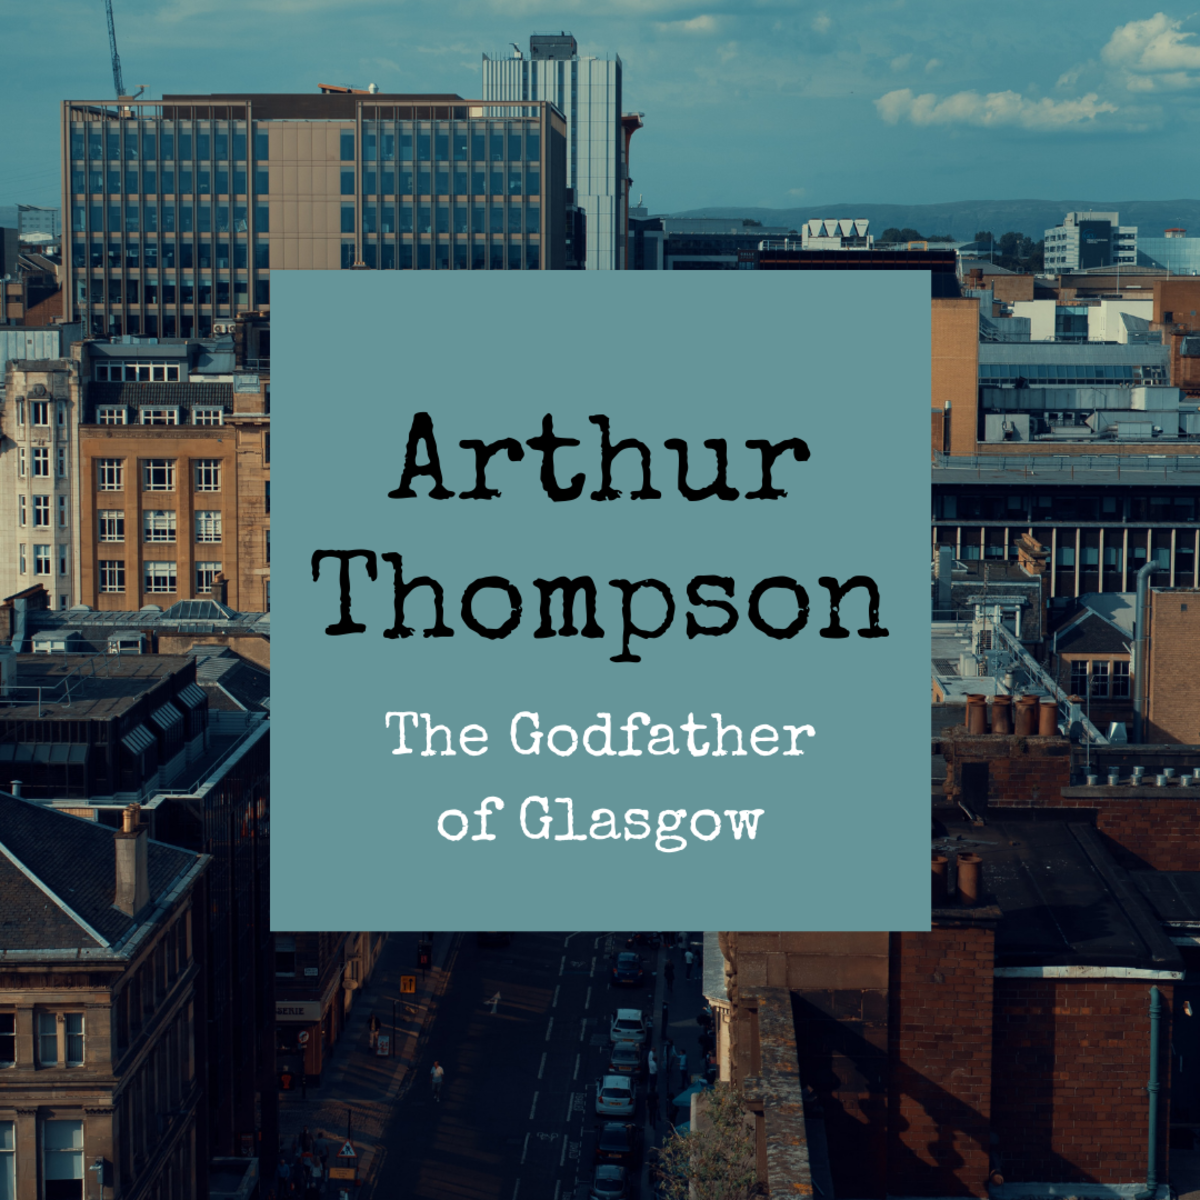 Arthur Thompson was an infamous gangster in the Glasgow underworld. Learn about his life and death.